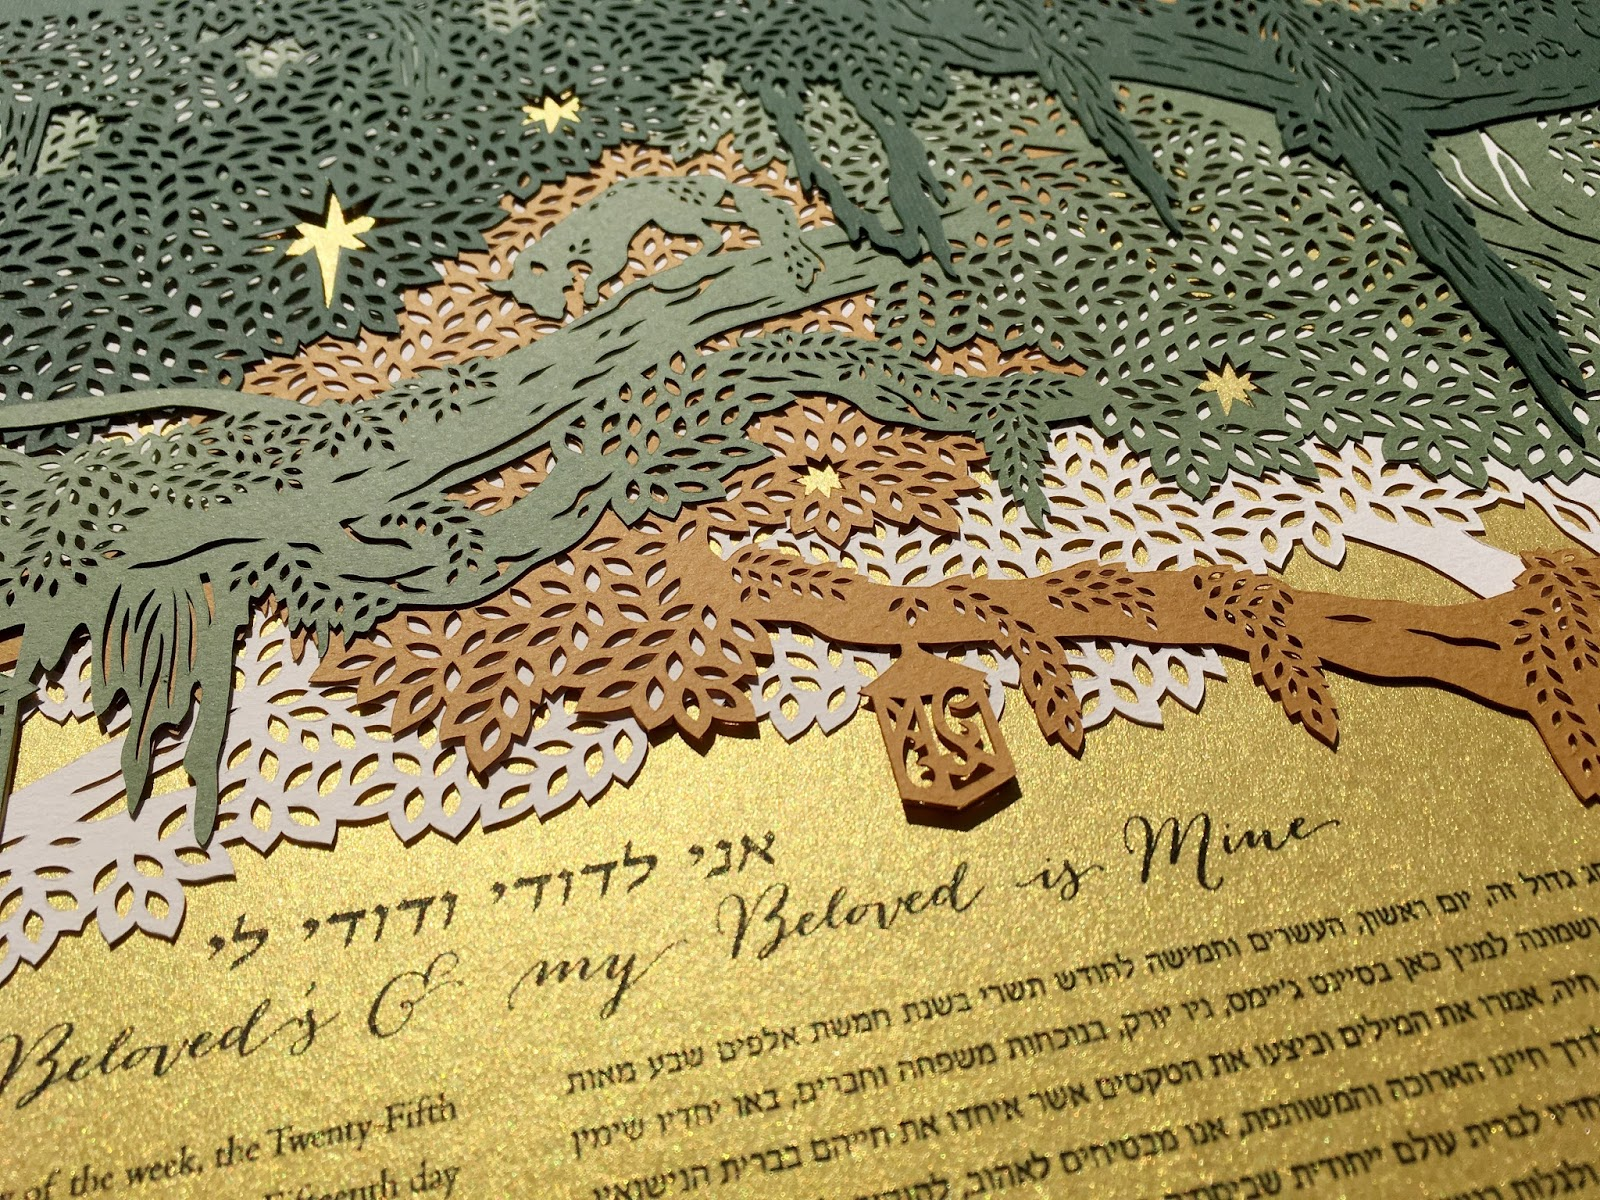 Detail of multi-layered custom design ketubah I Am My Beloved's & My Beloved Is Mine